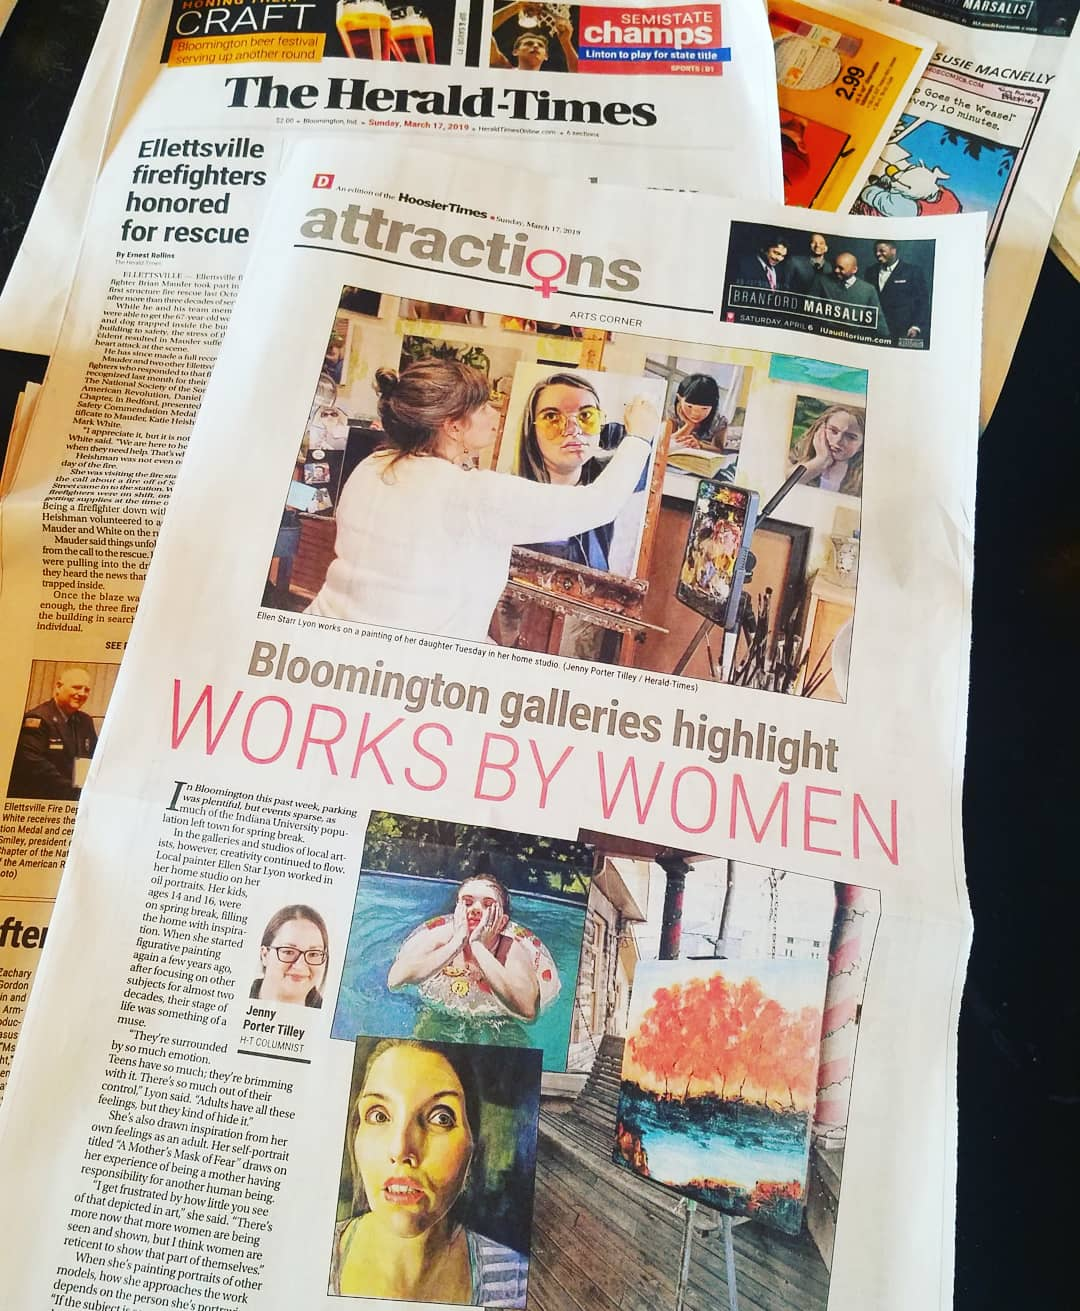 """Works By Women"" interview in the Bloomington Herald Times - by Jenny Porter-Tilley"